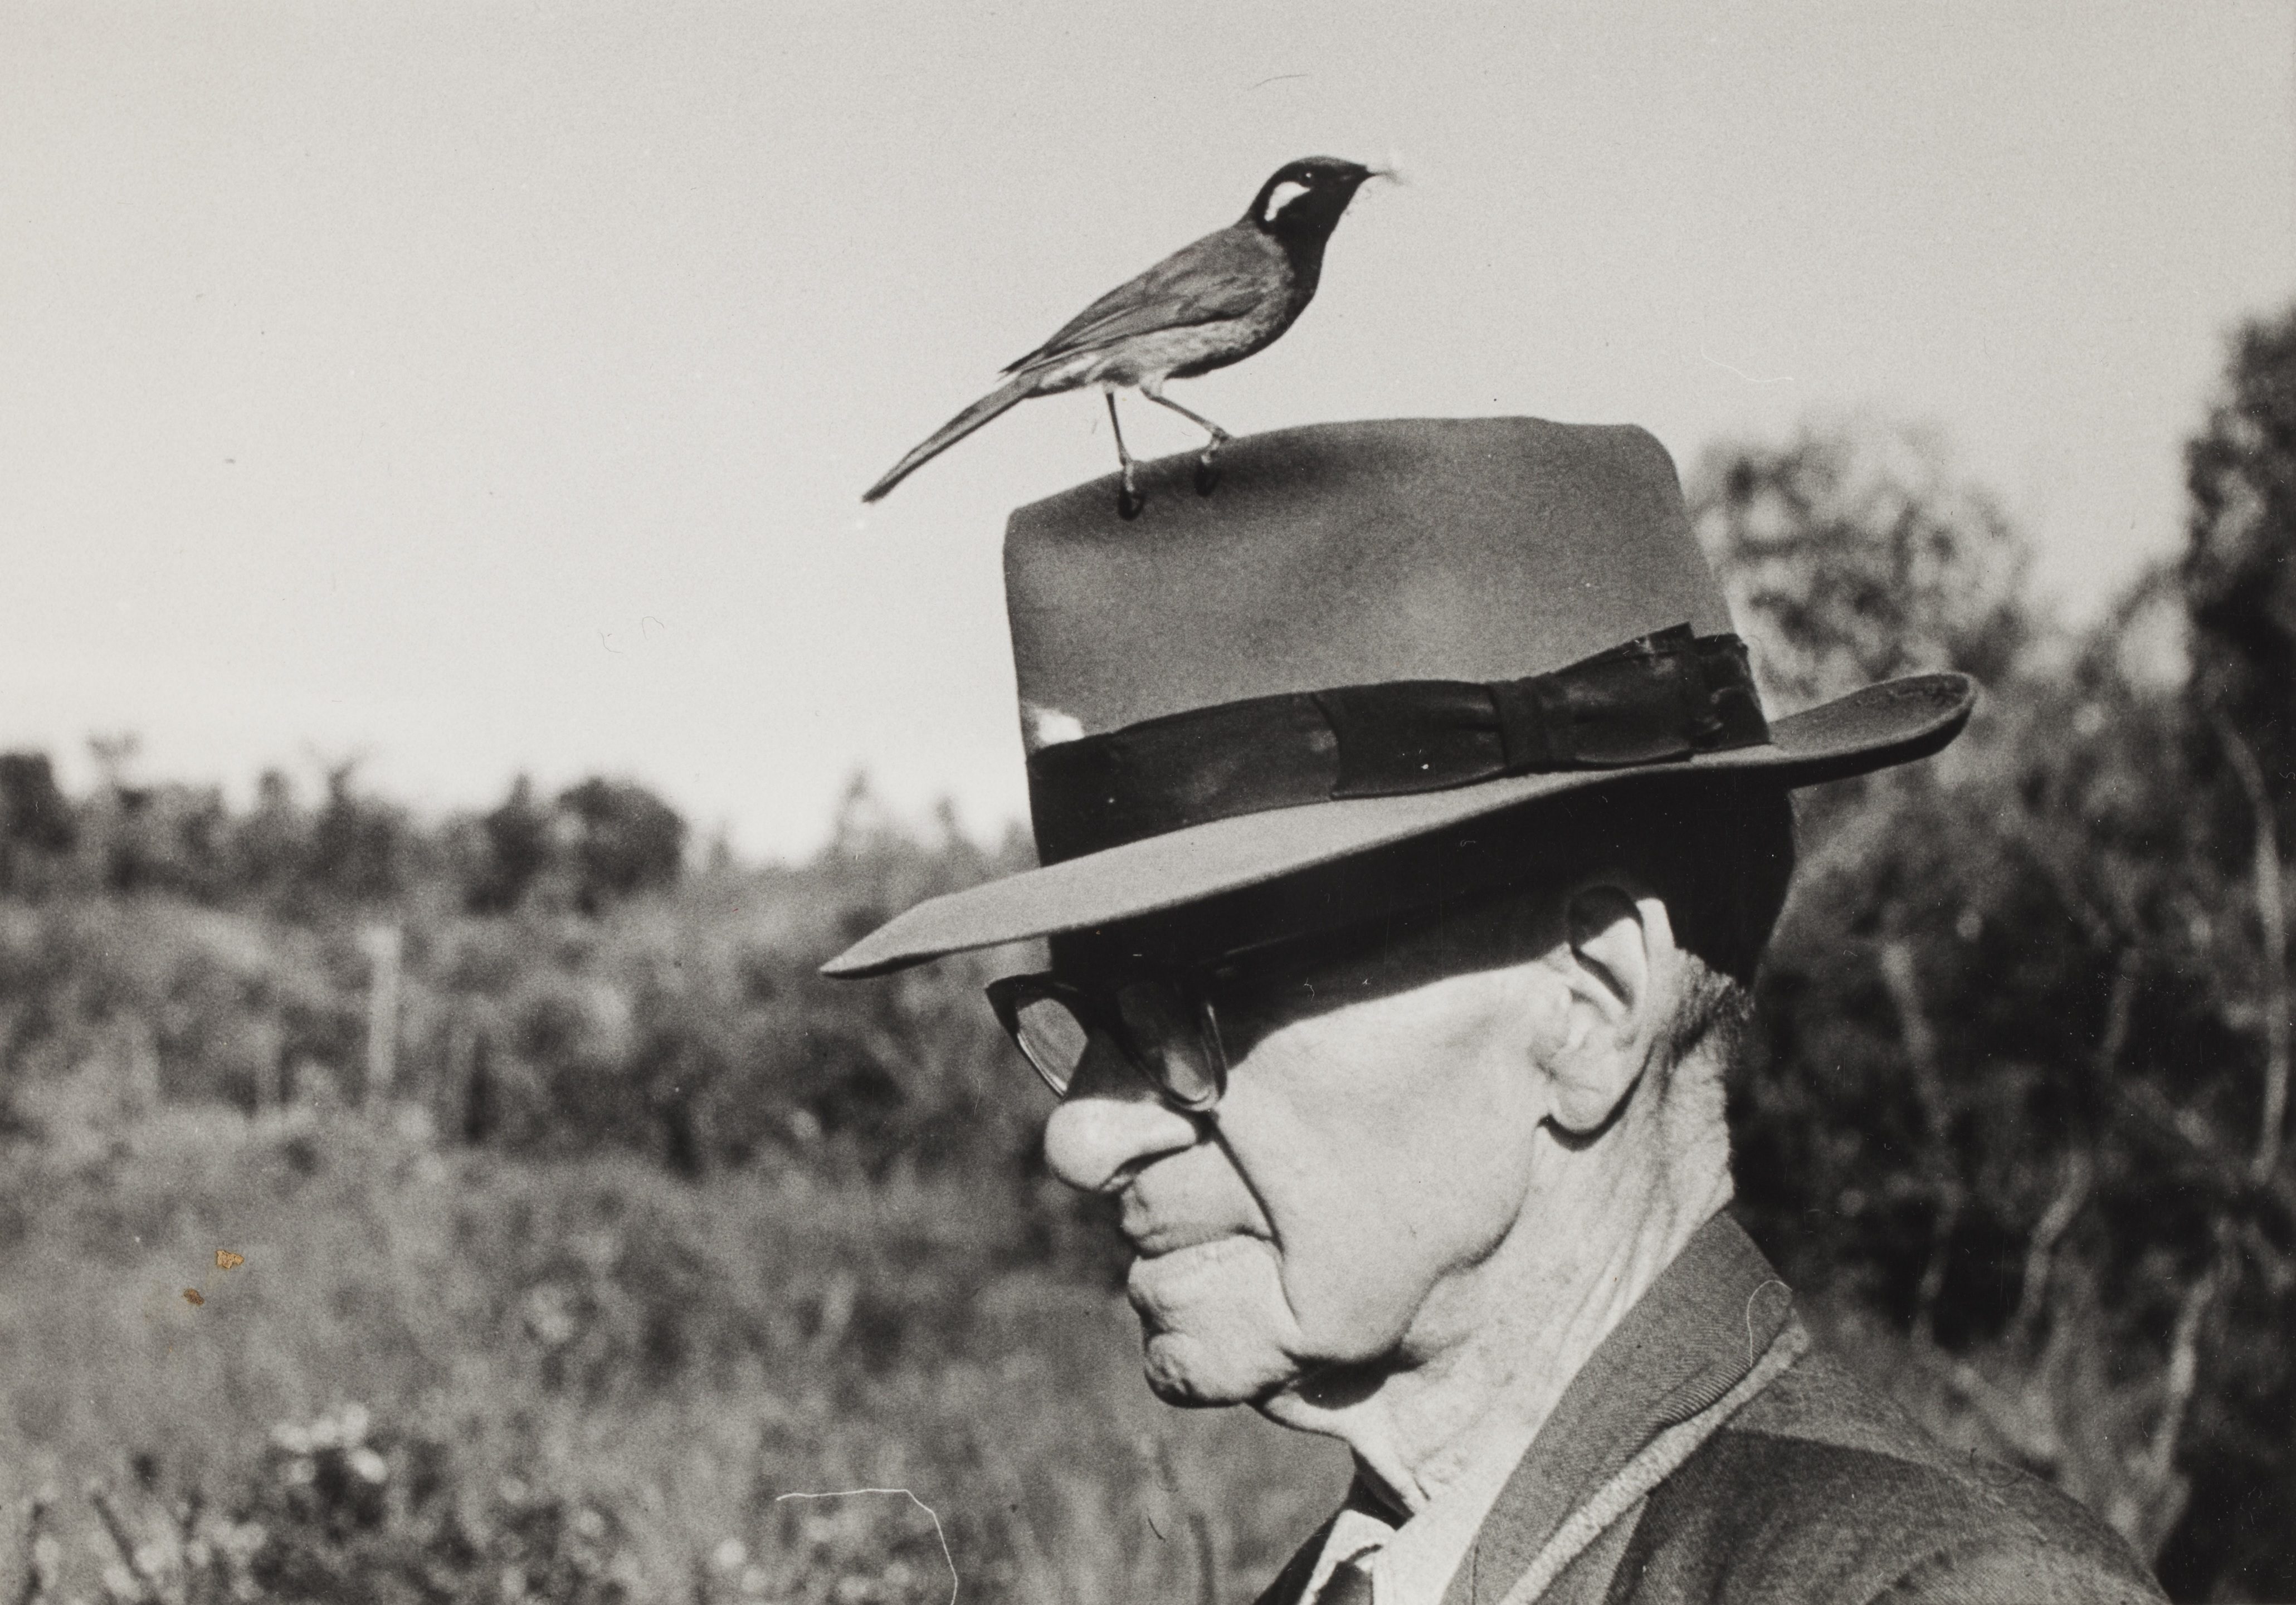 Mateship with Birds: Chisholm with a White-eared Honeyeater on his hat, probably in Kuring-gai Chase